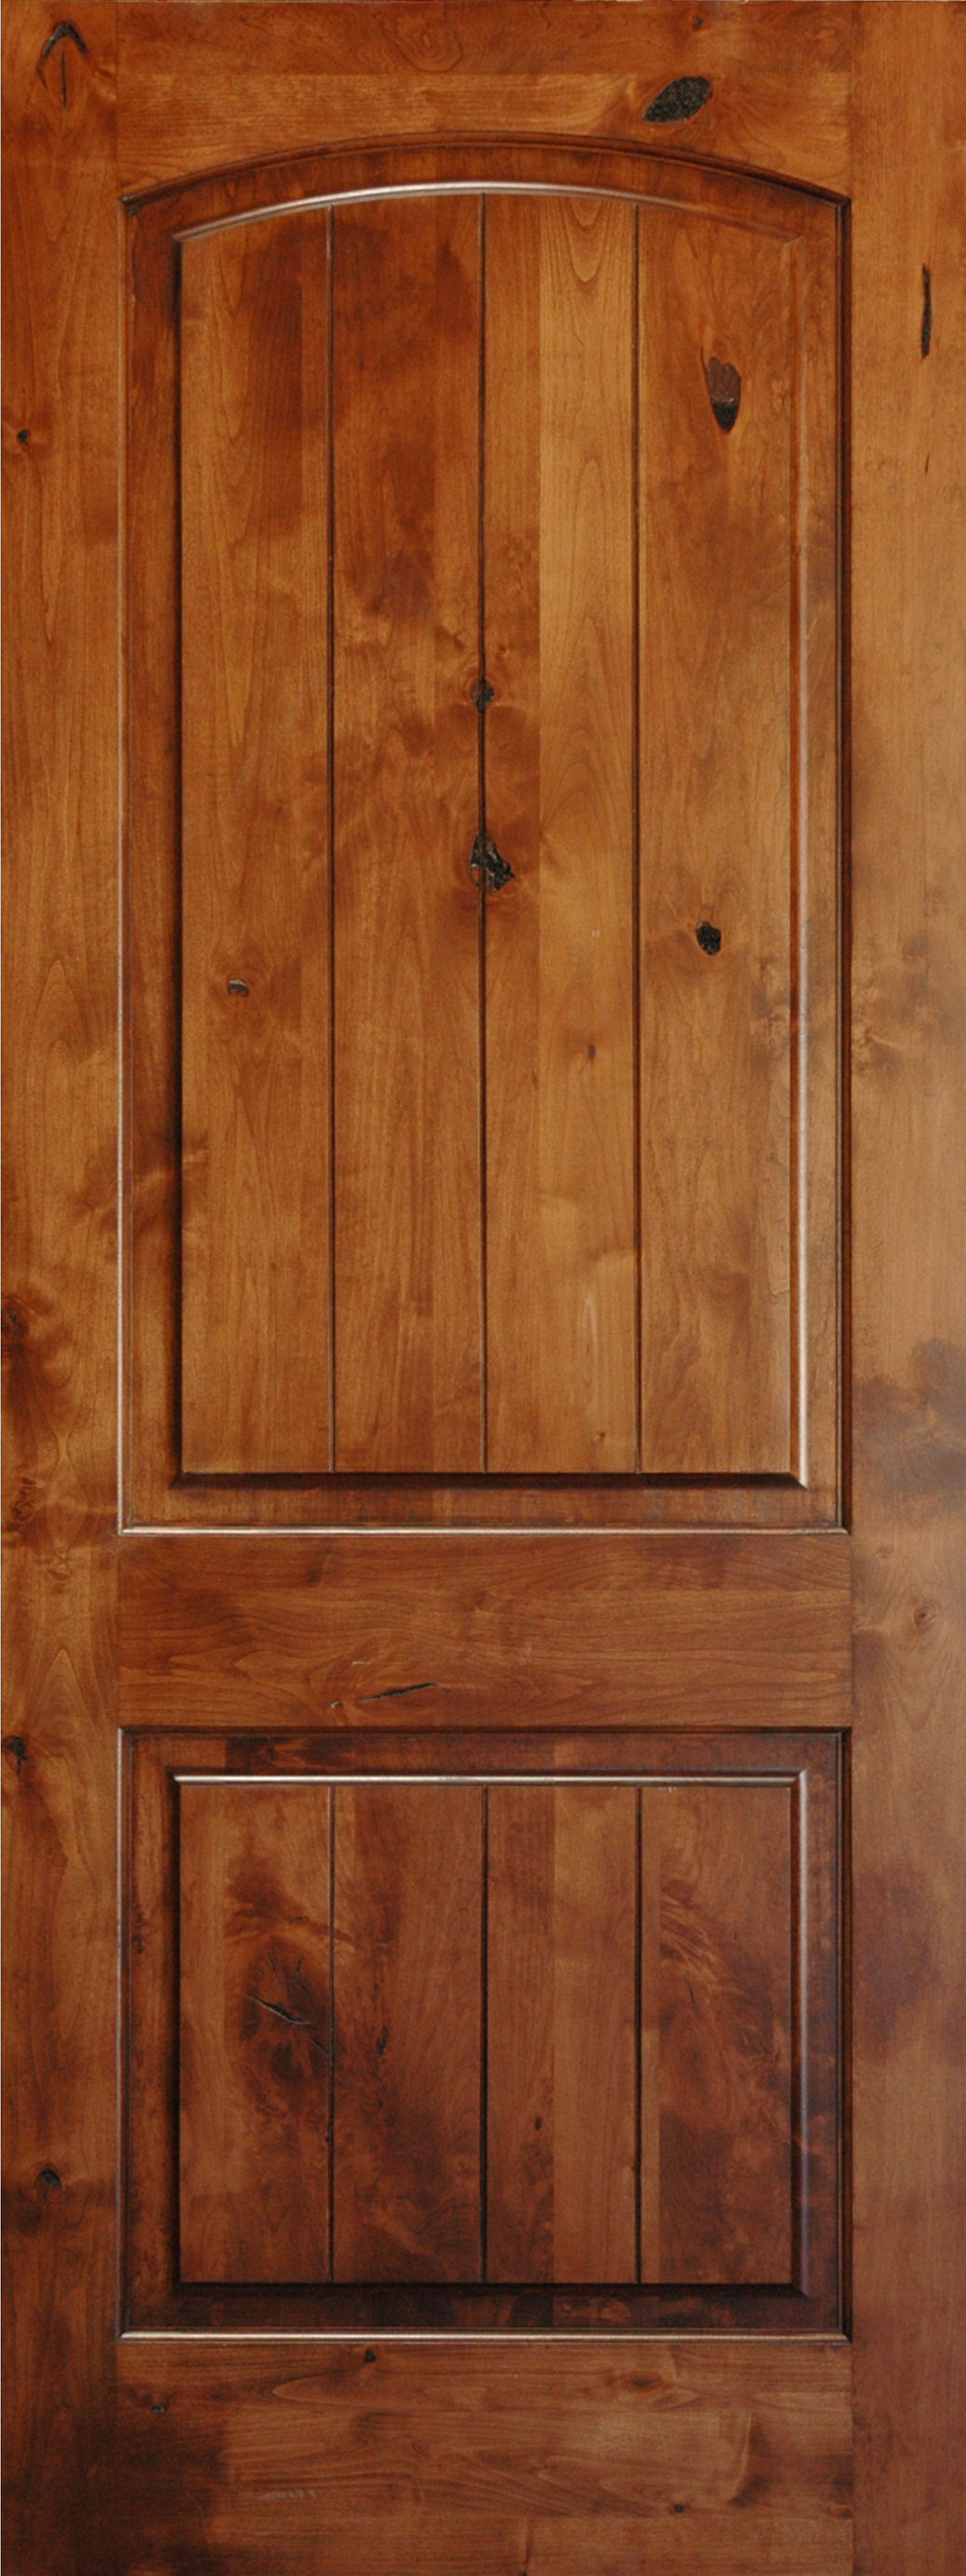 Knotty alder 8 39 v groove arch 2 panel wood interior doors for Hardwood doors